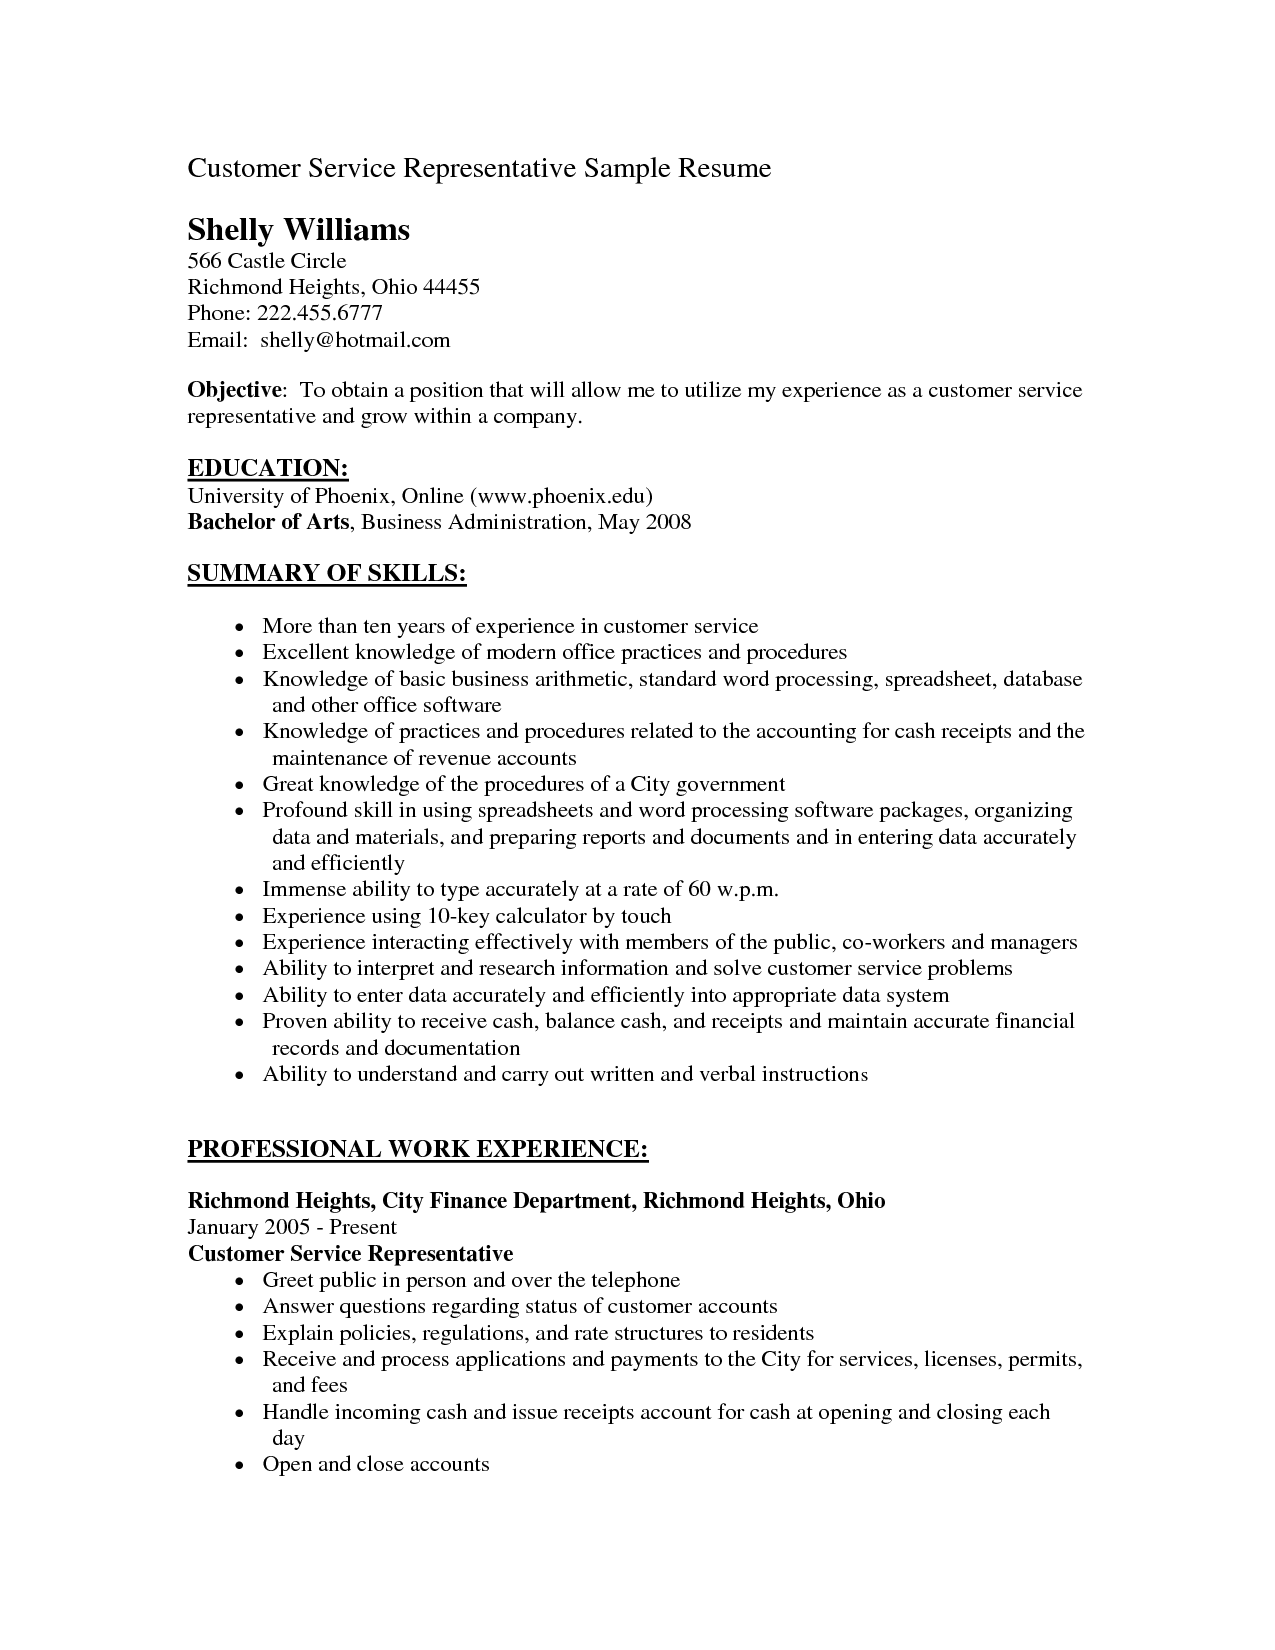 Resume Objectives Customer Service  Sample Resume